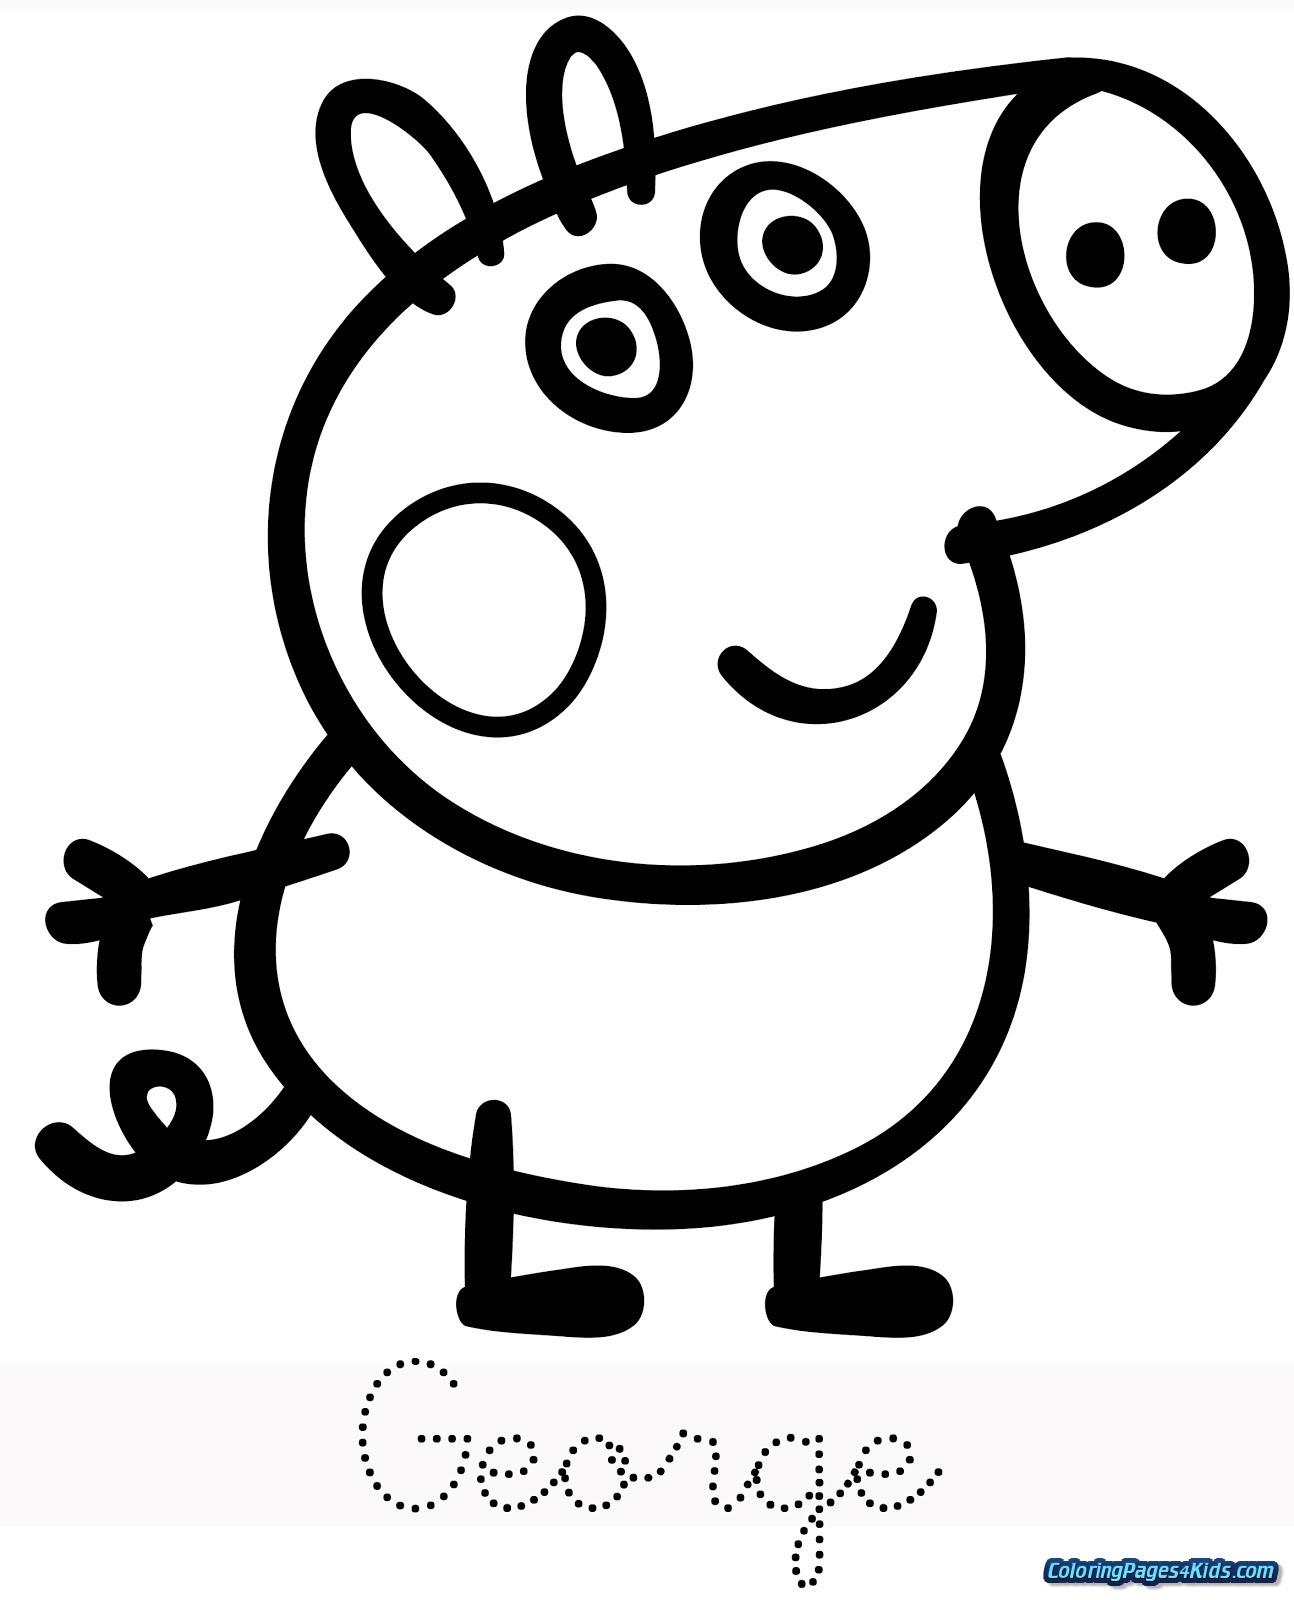 peppa pig pictures for colouring 30 printable peppa pig coloring pages you wont find for pictures peppa colouring pig